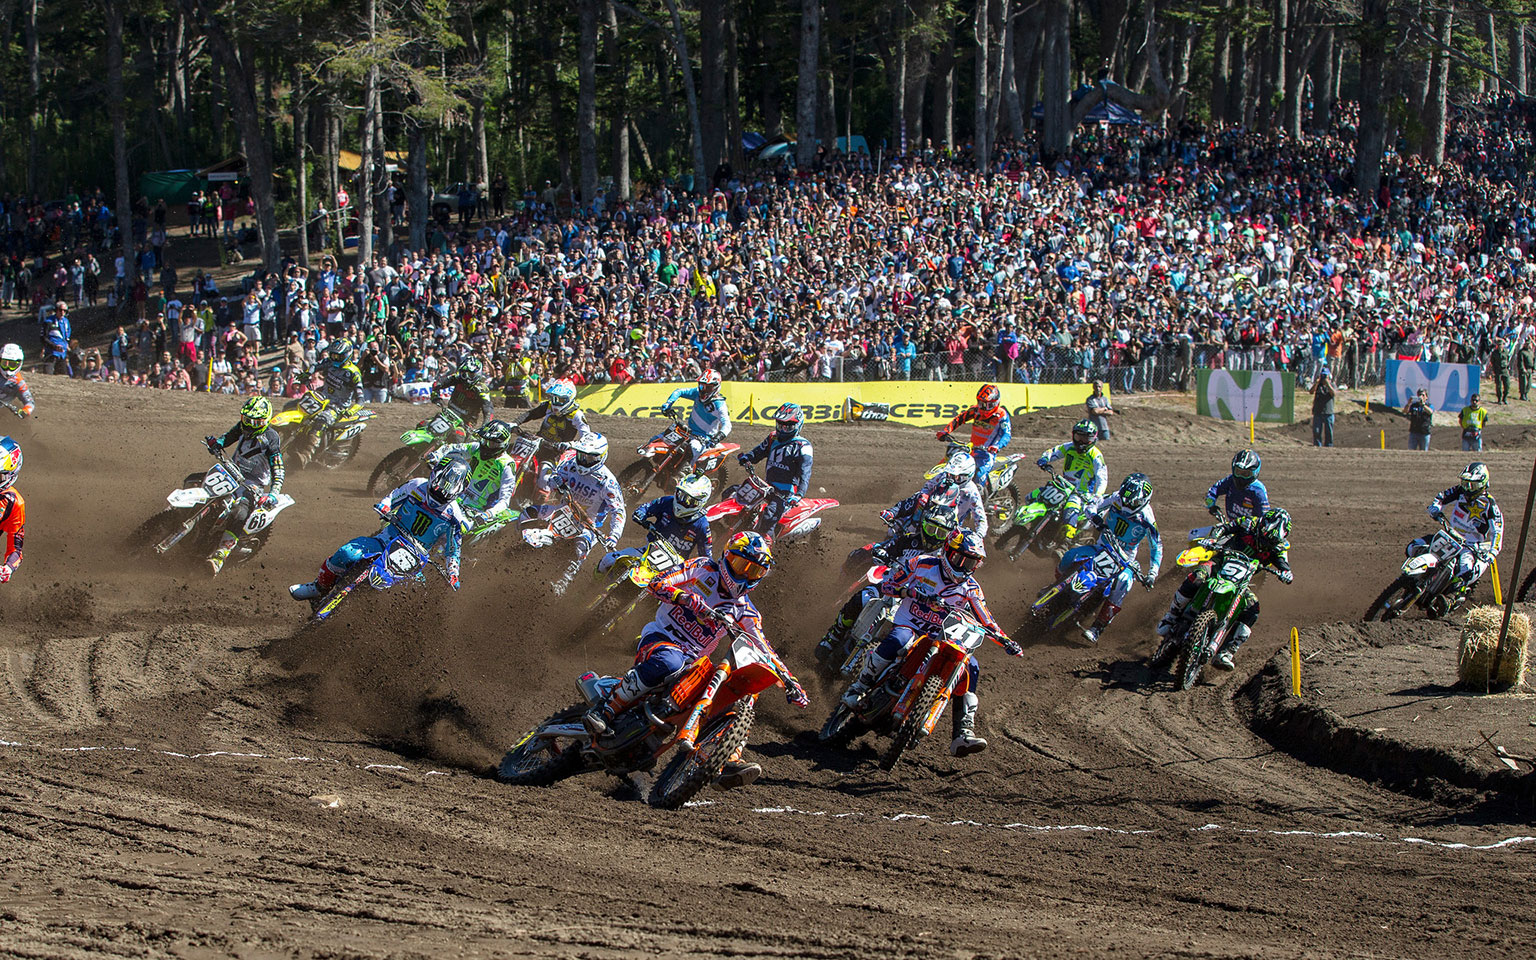 A great track and a big crowd were the perfect recipe for GP motocross